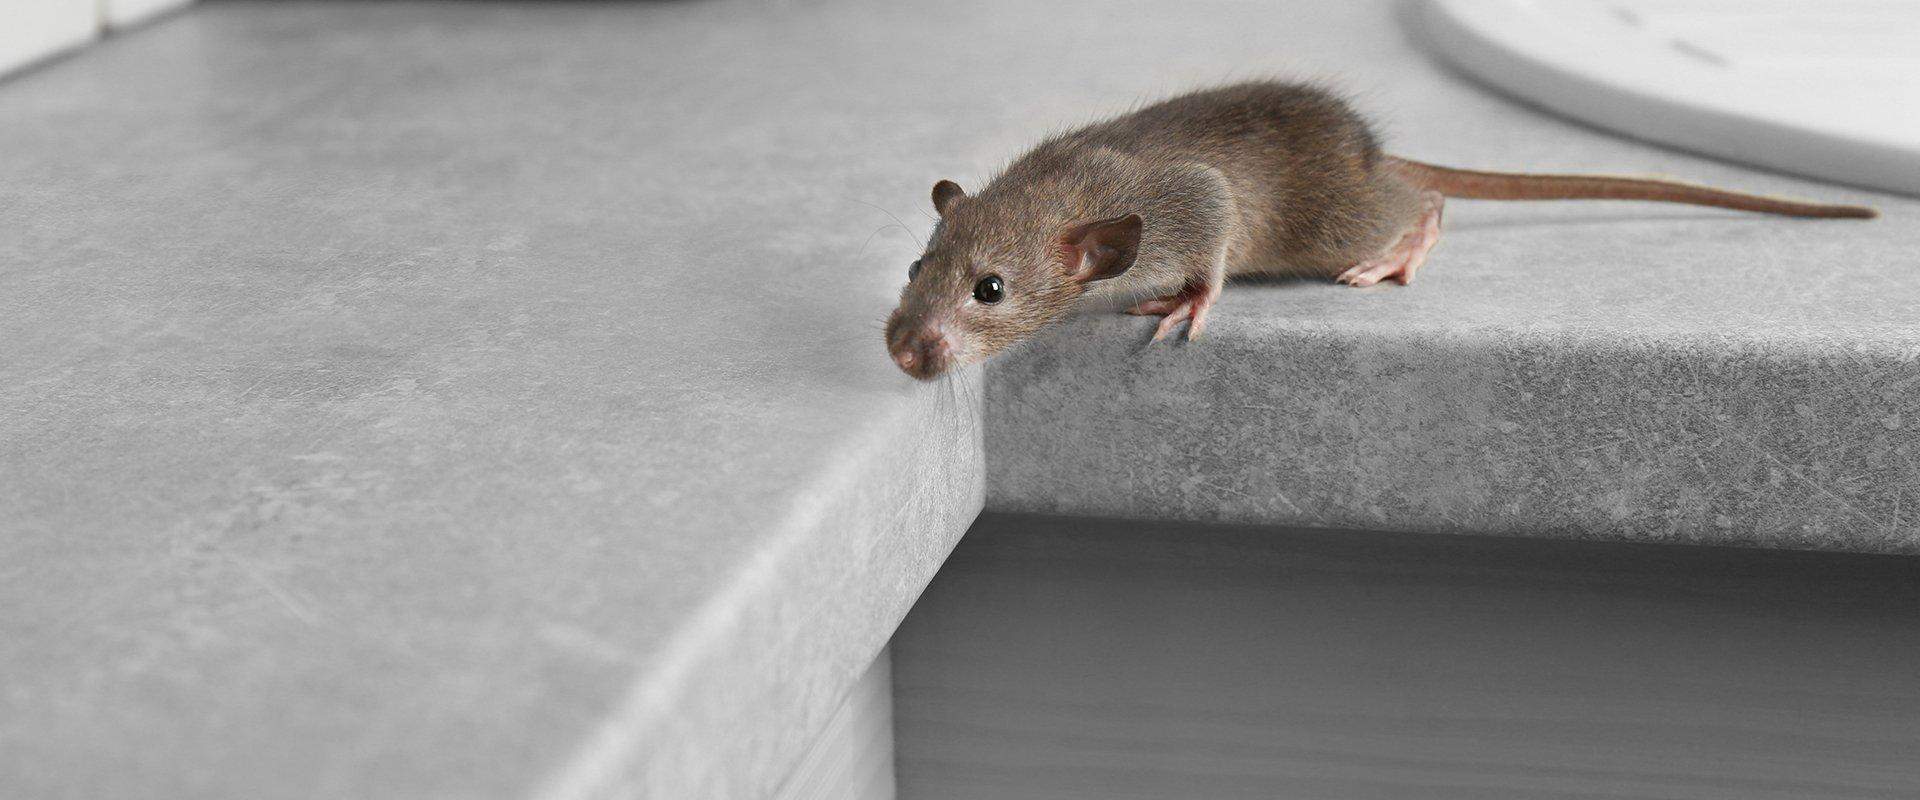 a small rat on a kitchen counter